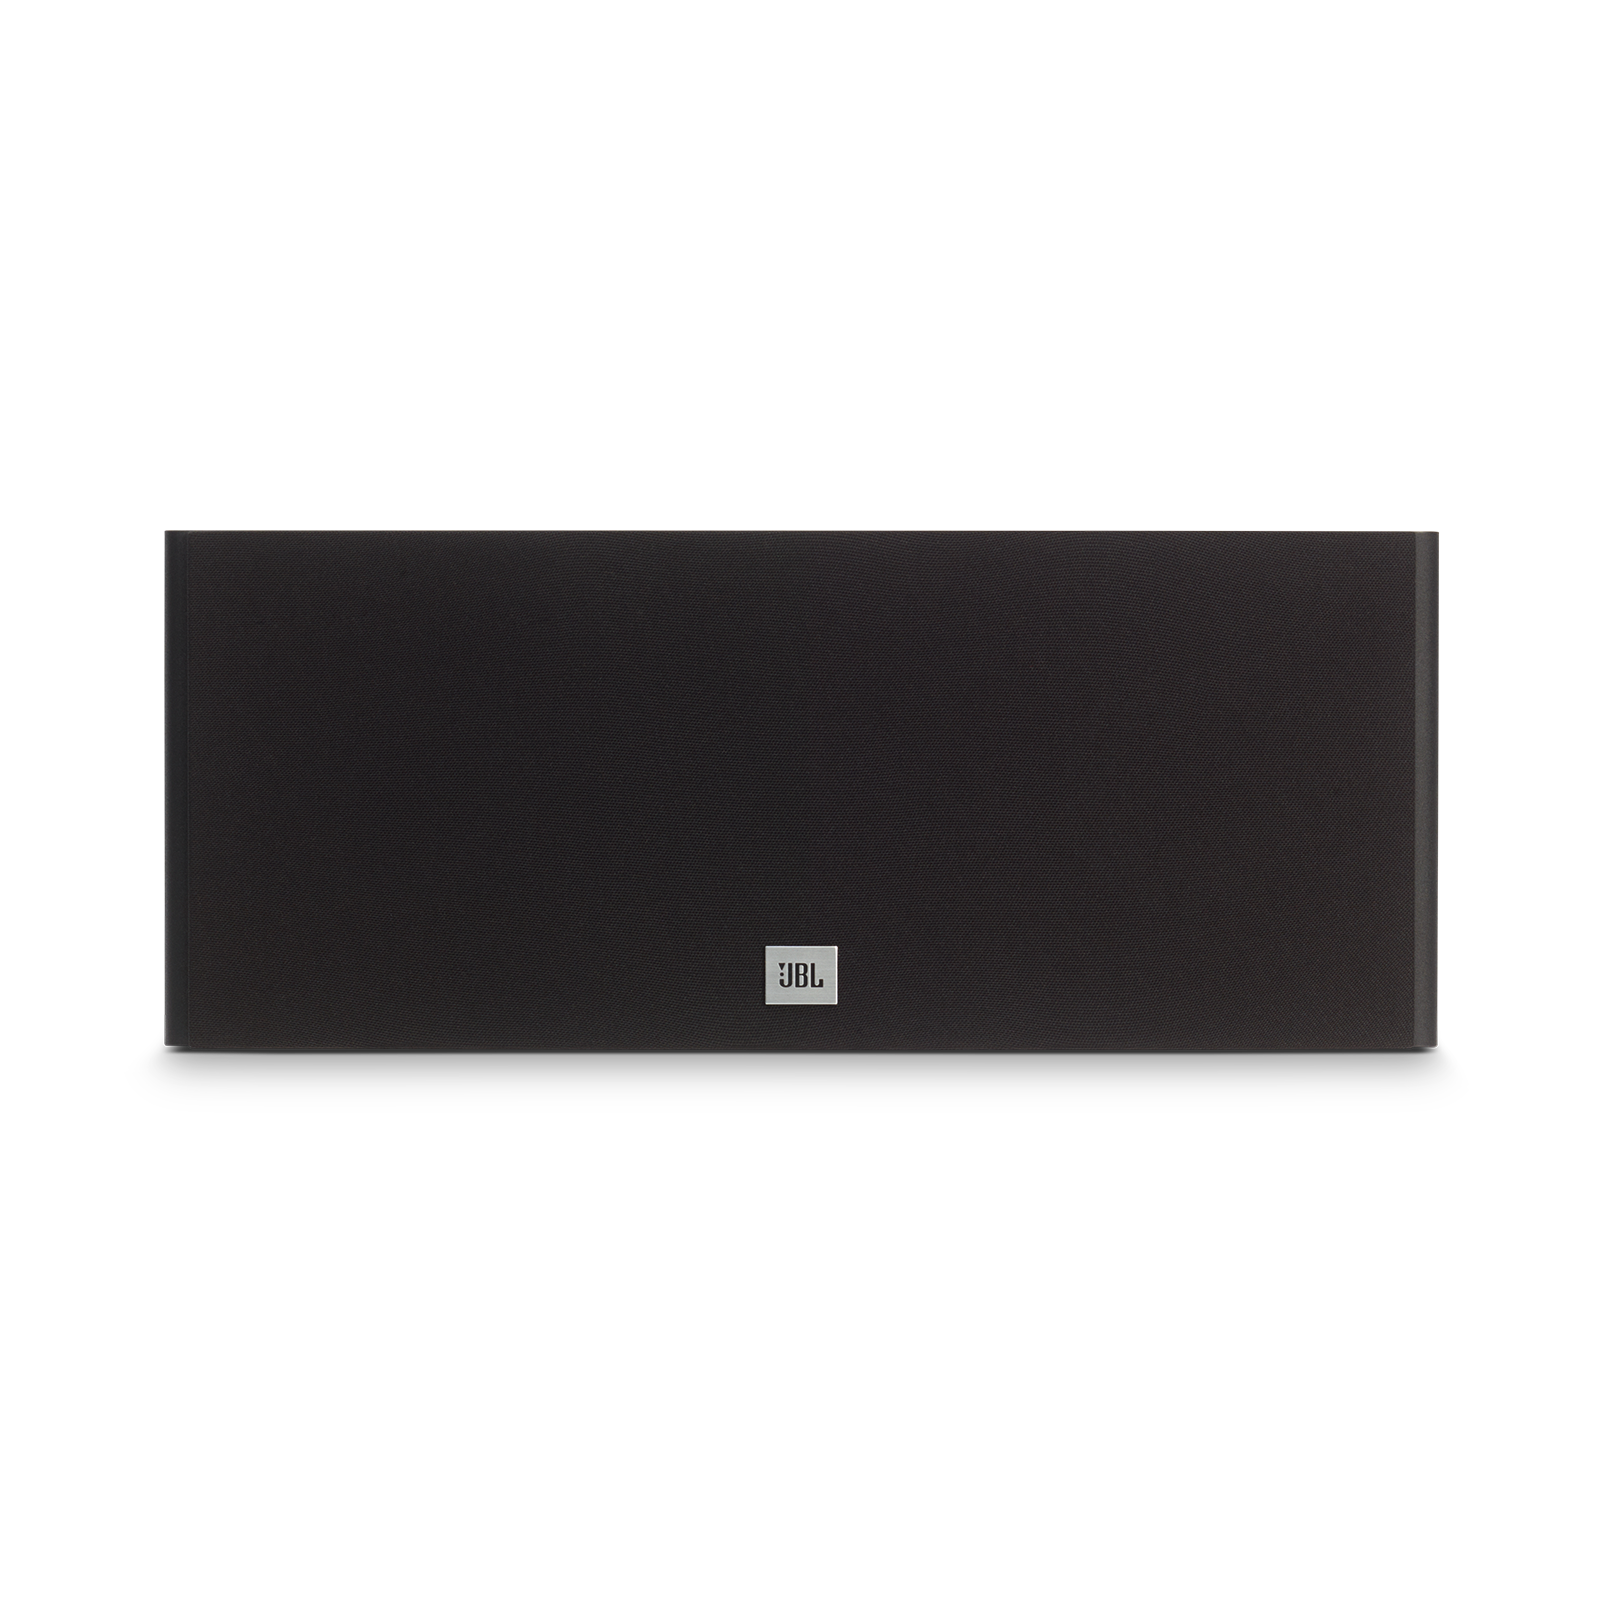 JBL Stage A125C - Black - Home Audio Loudspeaker System - Front